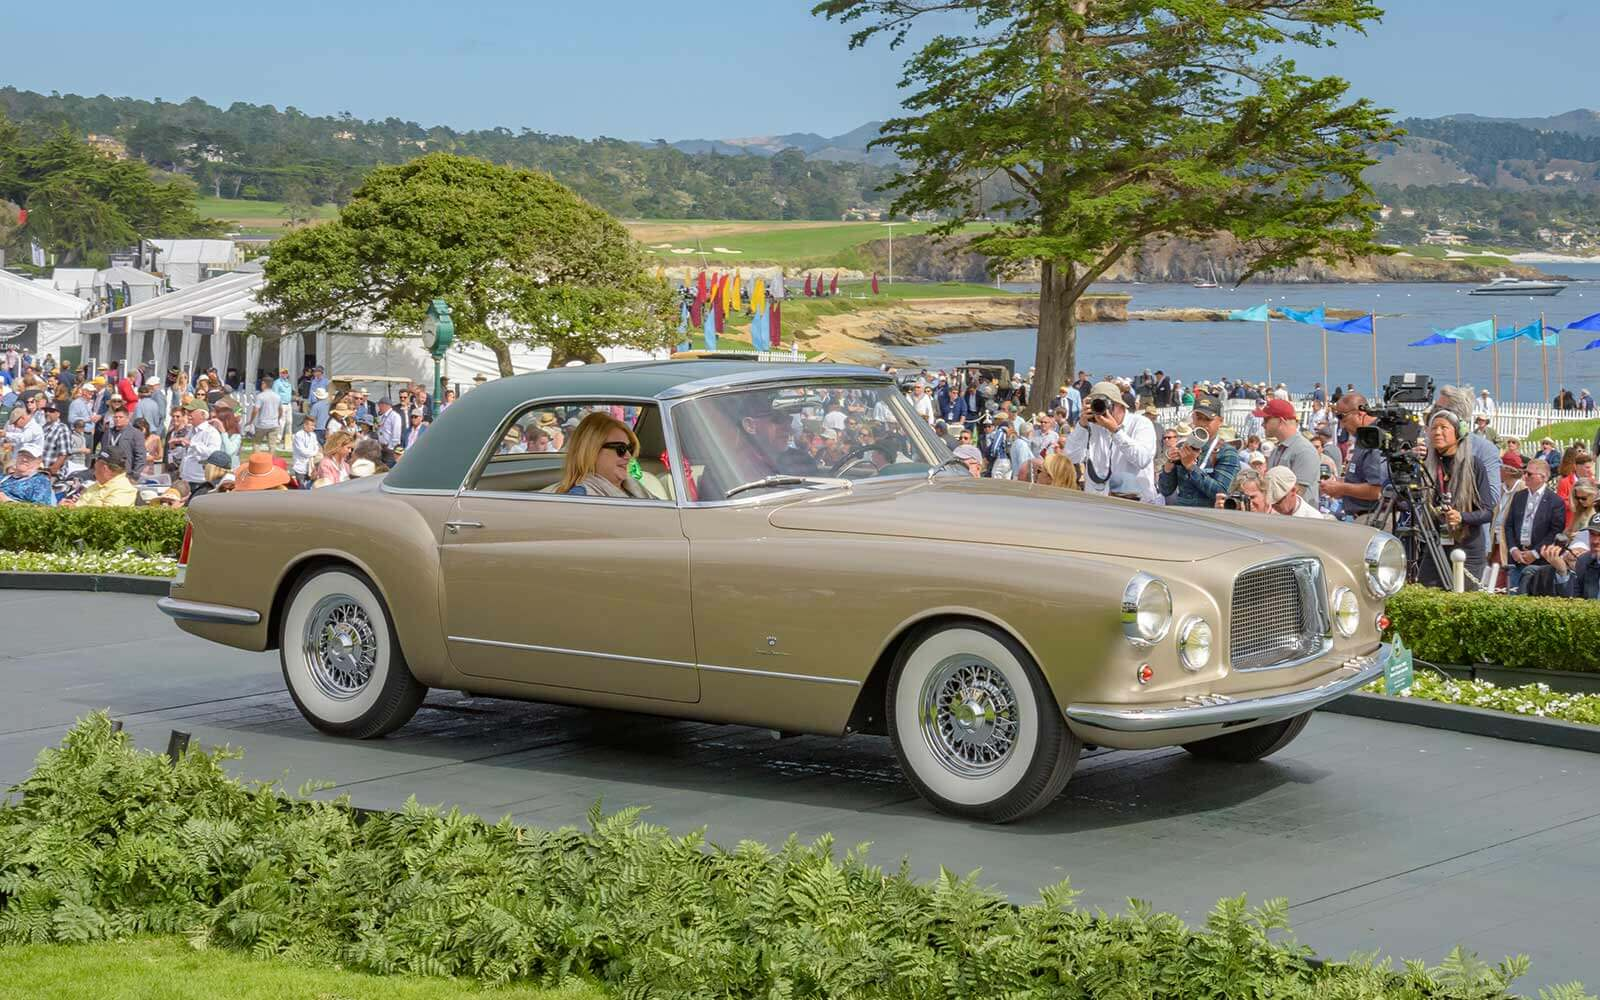 1957 Chrysler 300B Boano Coupe Speciale